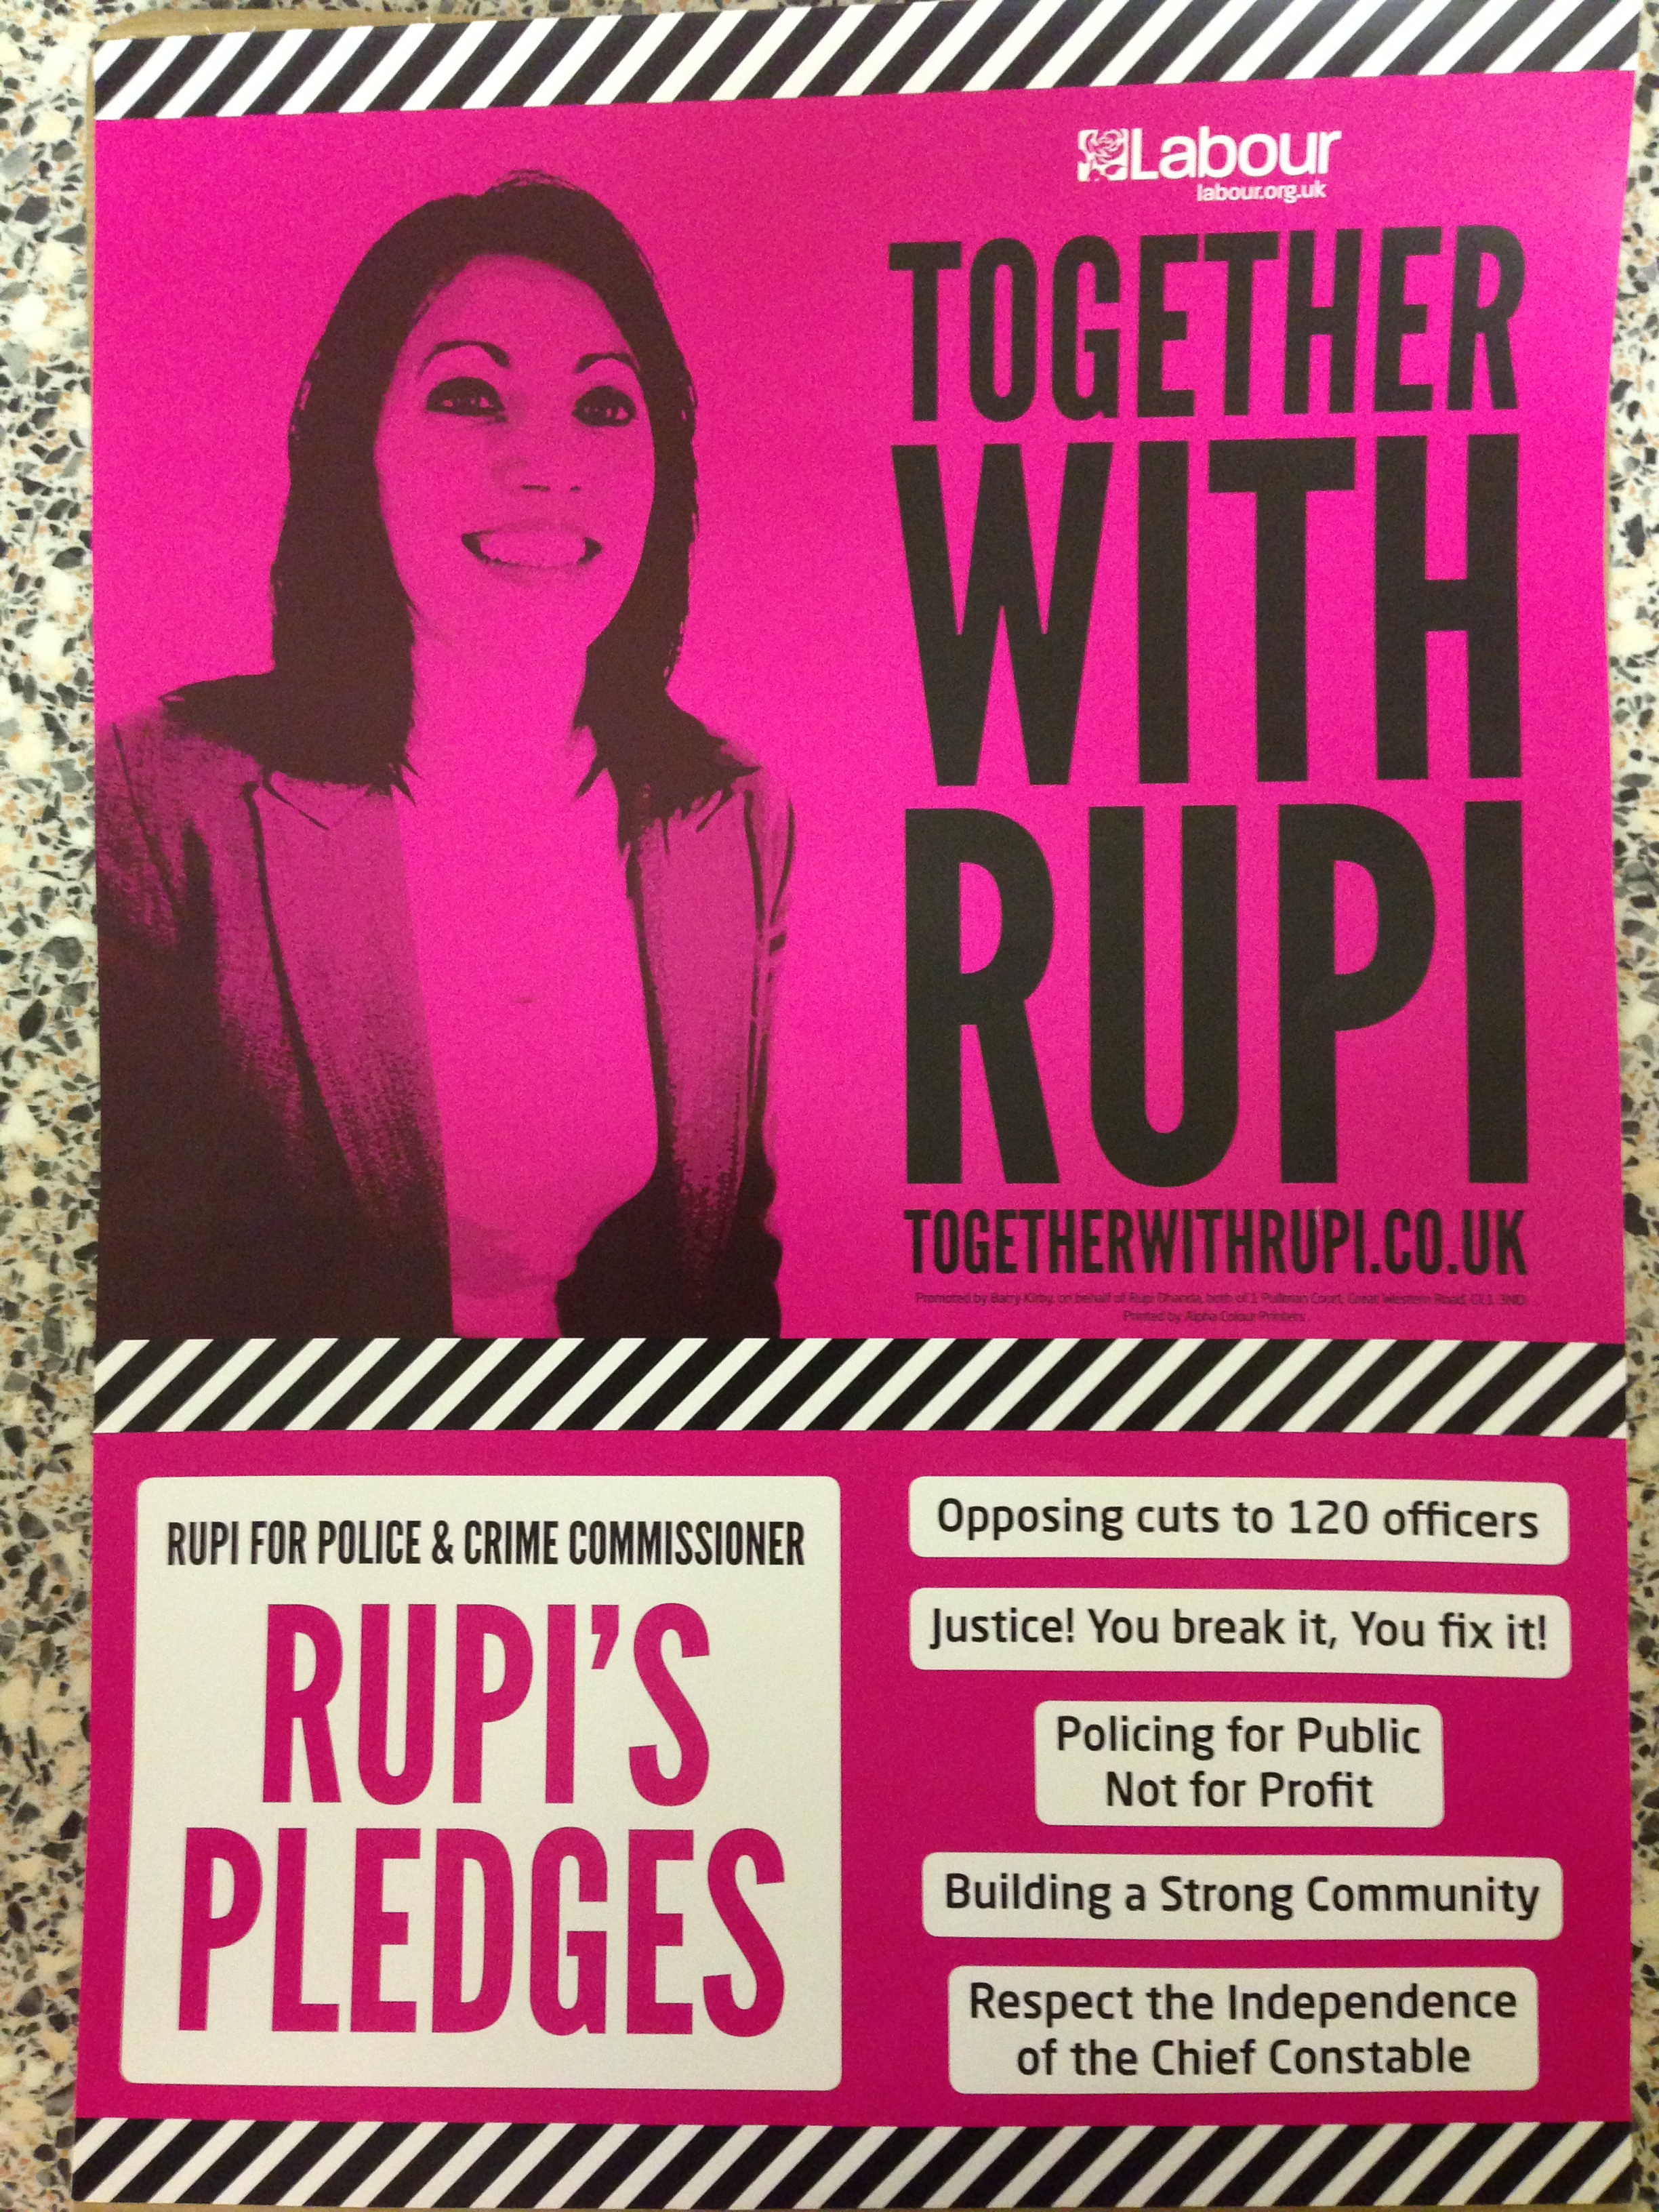 The Pledges of Rupi Dhanda